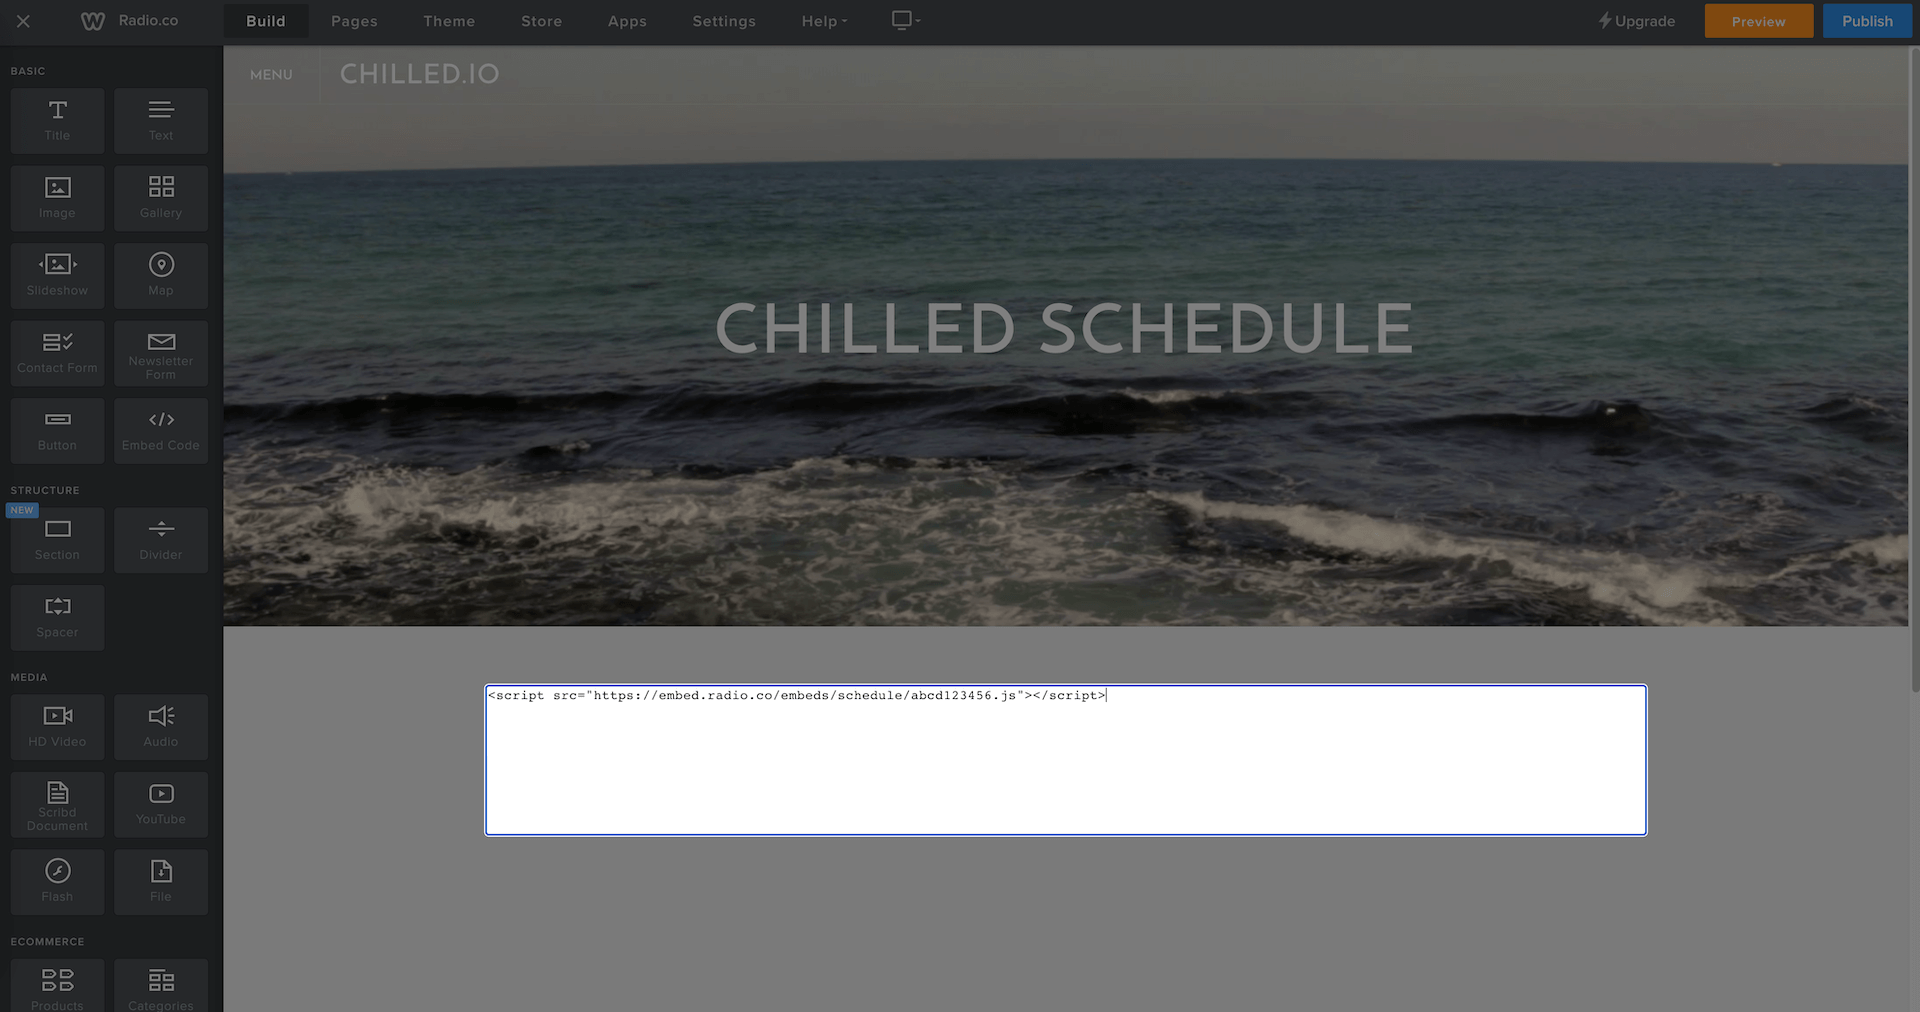 Chilled.io code being embedded on website.